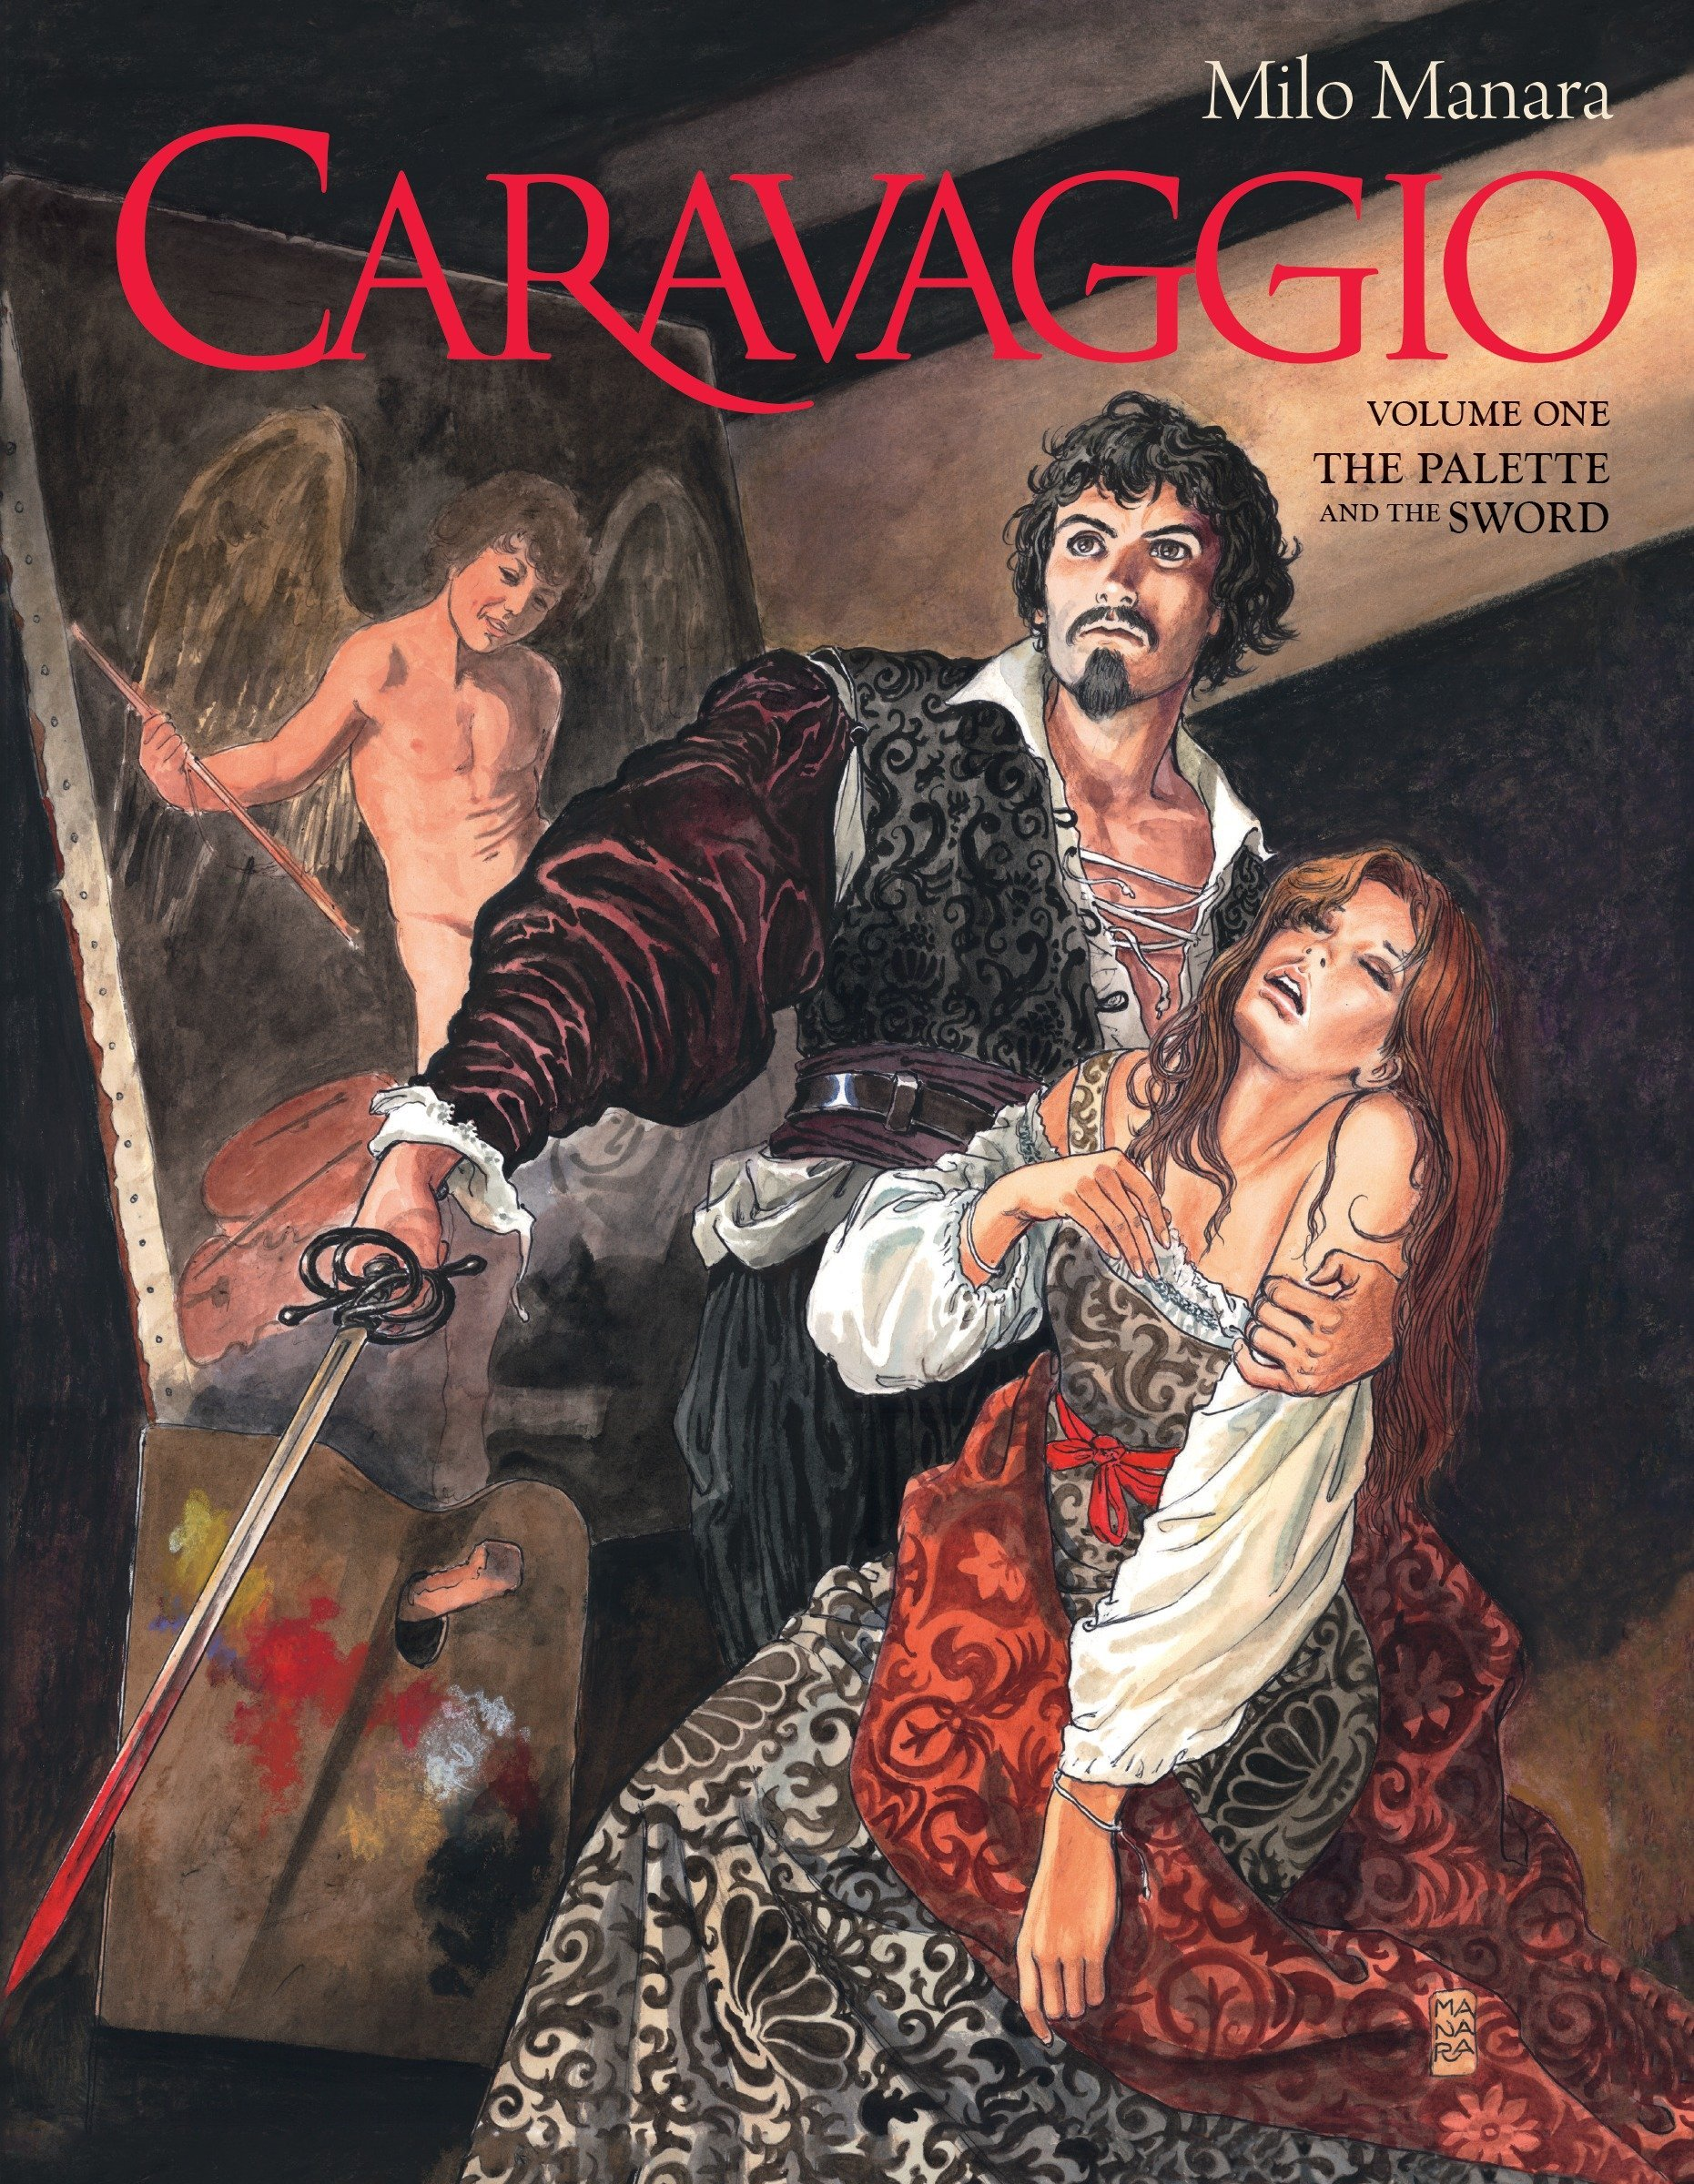 Caravaggio Volume 1 Manara Milo 9781506703398 Amazon Com Books